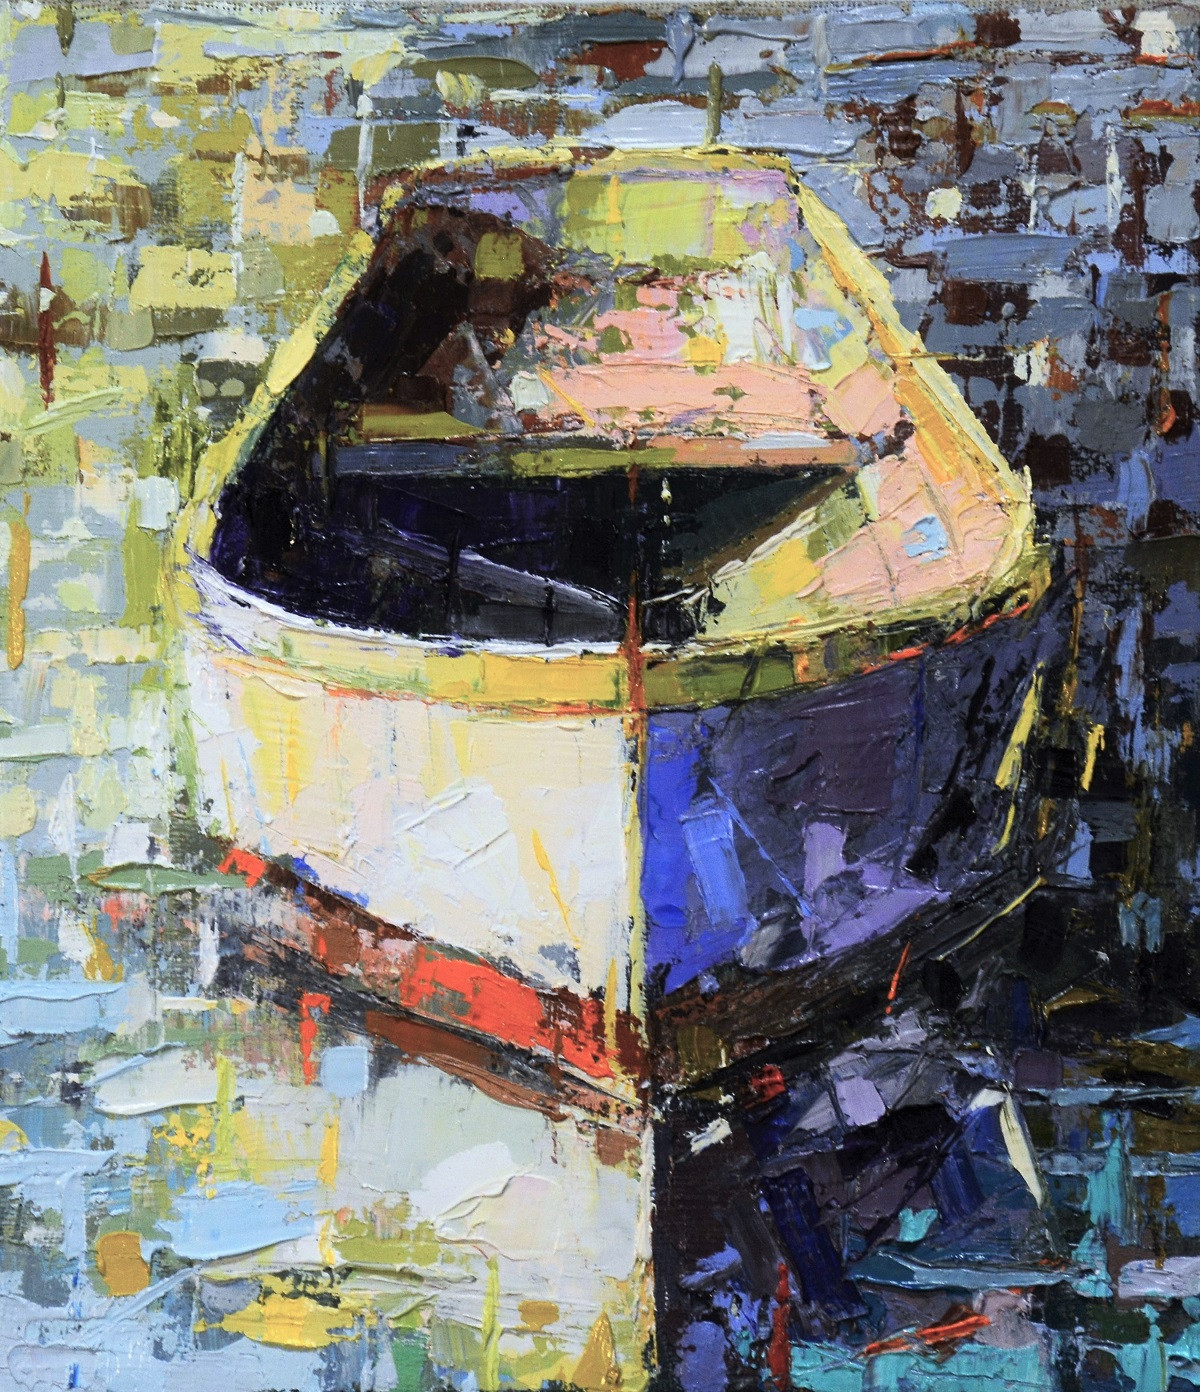 Painting with Boat   Kim McAninch